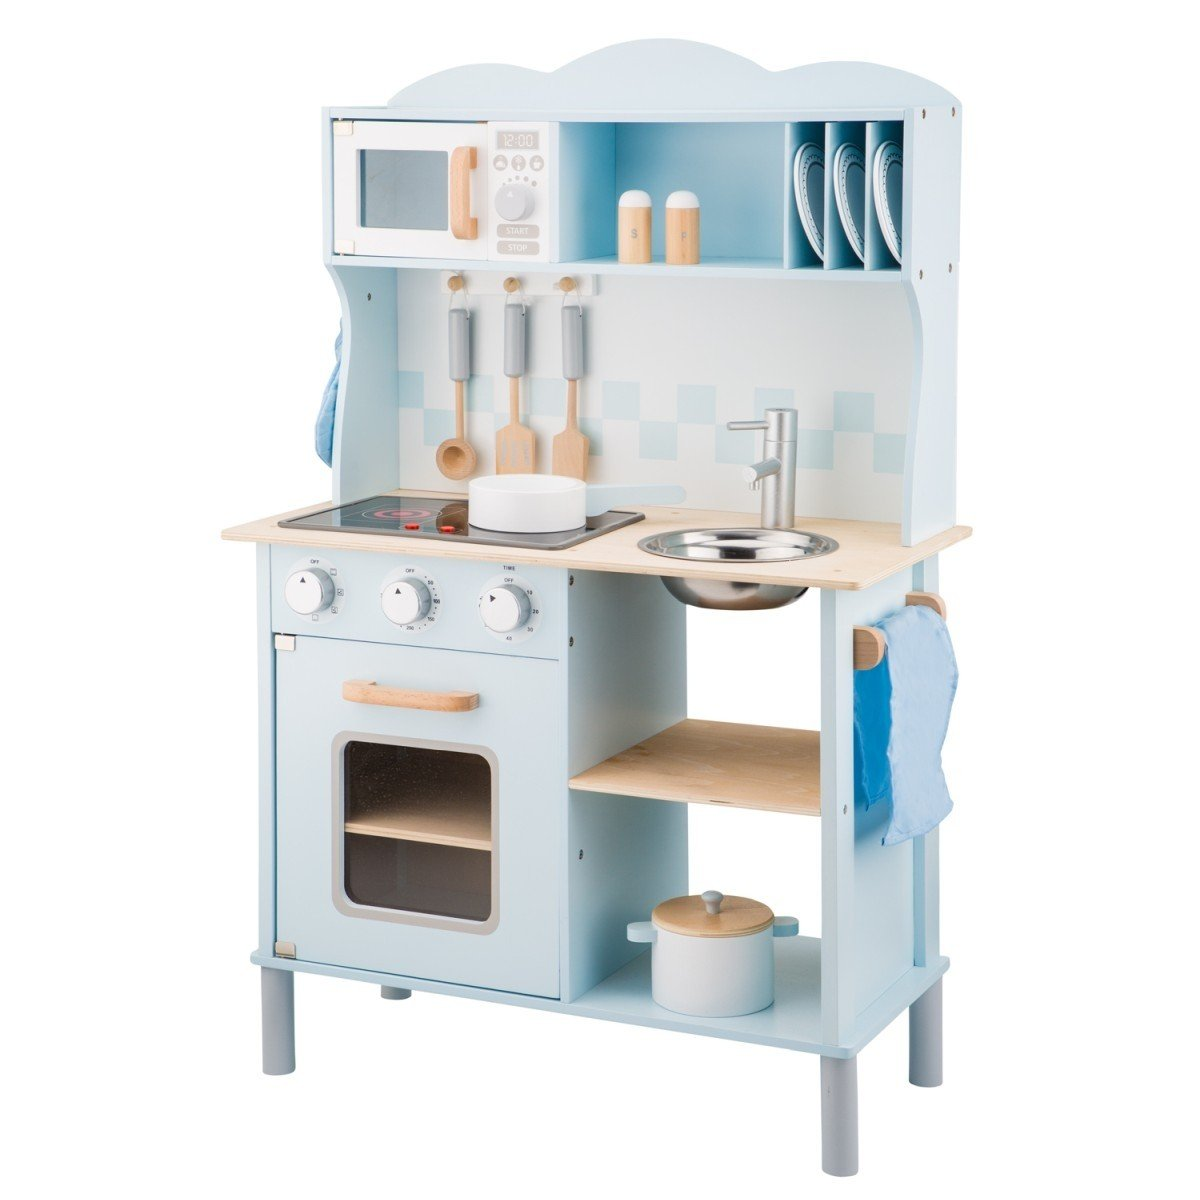 Modern Blue New Classic Toys Kitchenette New Classic Toys Pretend Play at Little Earth Nest Eco Shop